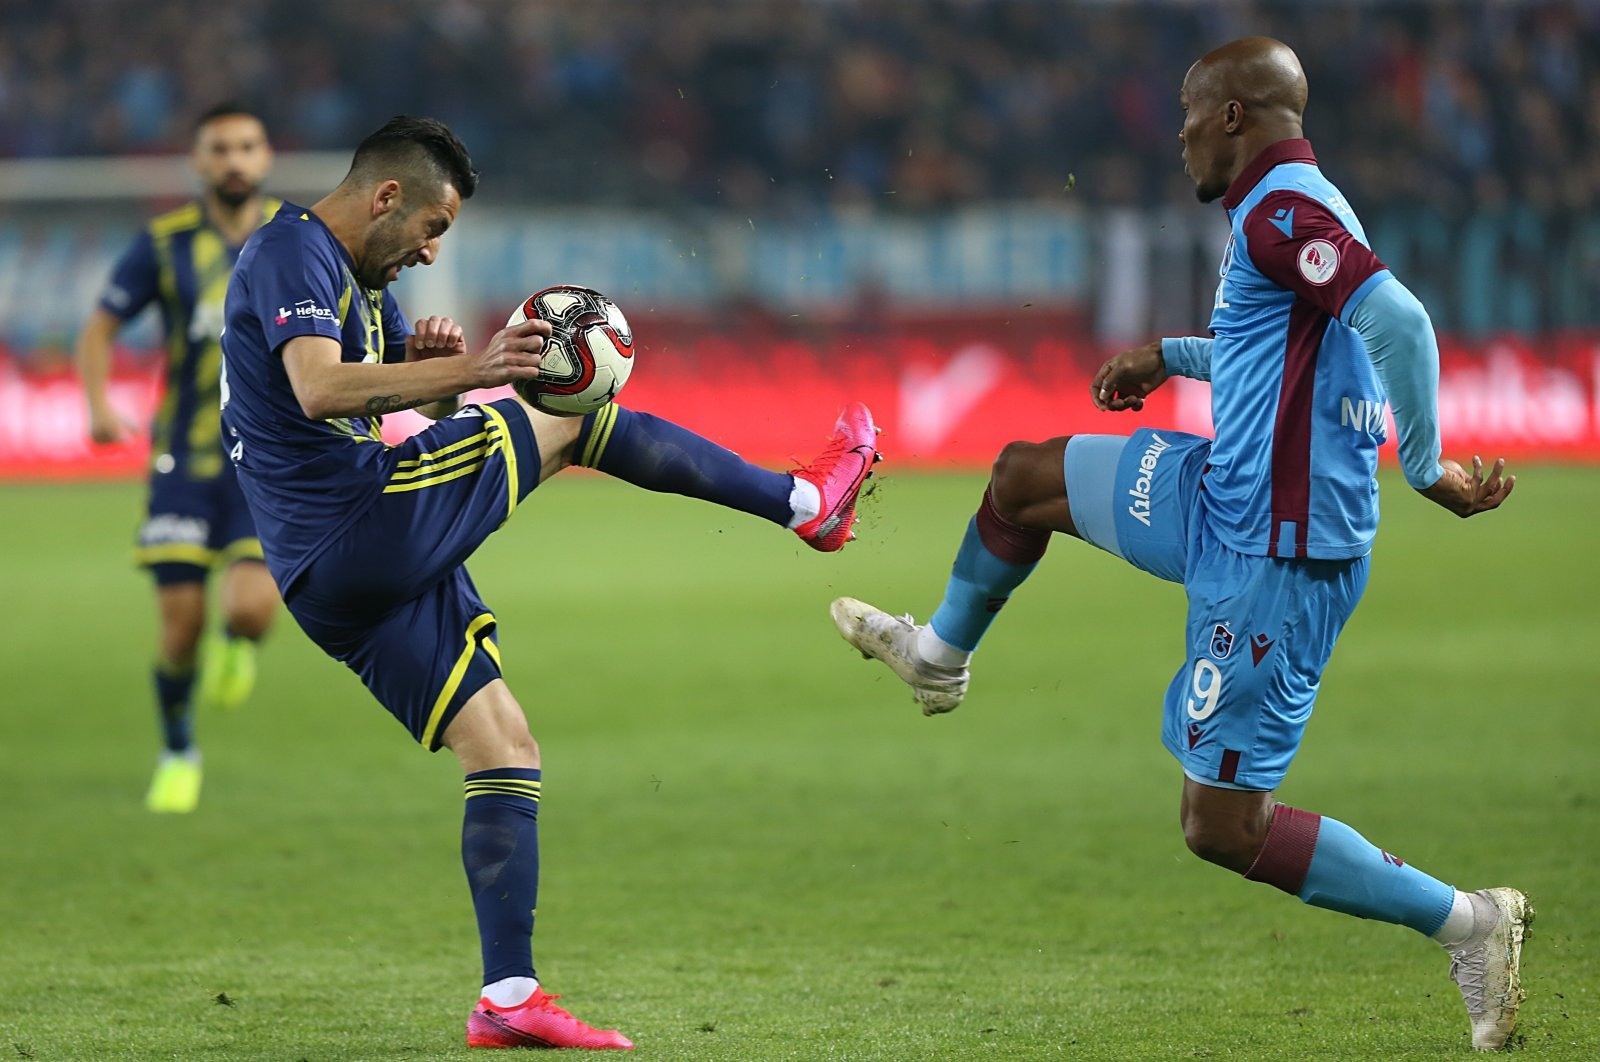 Trabzonspor's Anthony Nwakaeme (R) competes for the ball with former Fenerbahçe player Mauricio Isla during a Turkish Cup match in Trabzon, Turkey, March 3, 2020. (AA Photo)